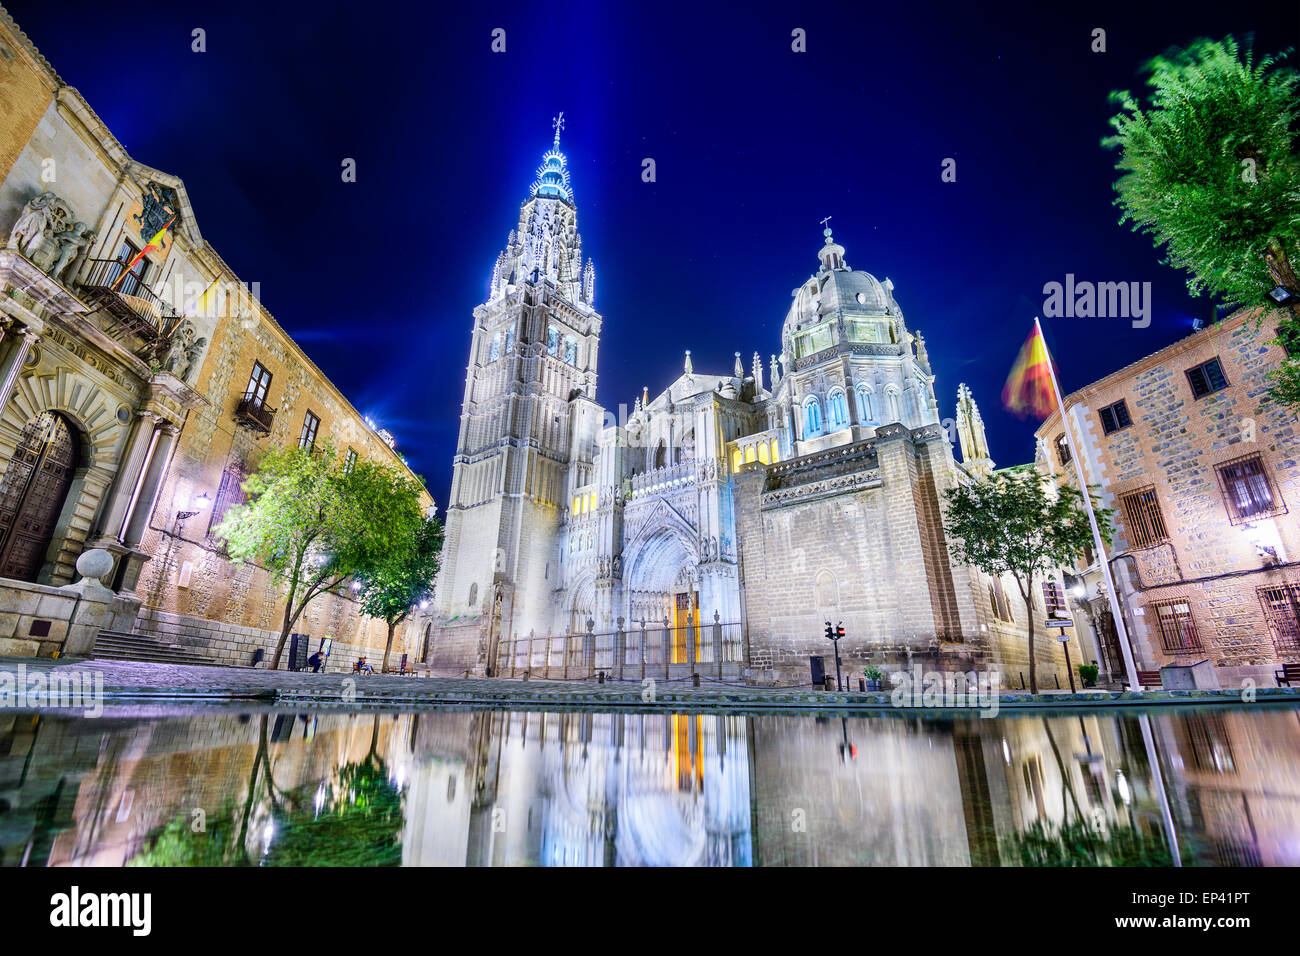 Toledo, Spain at the The Primate Cathedral of Saint Mary of Toledo. - Stock Image